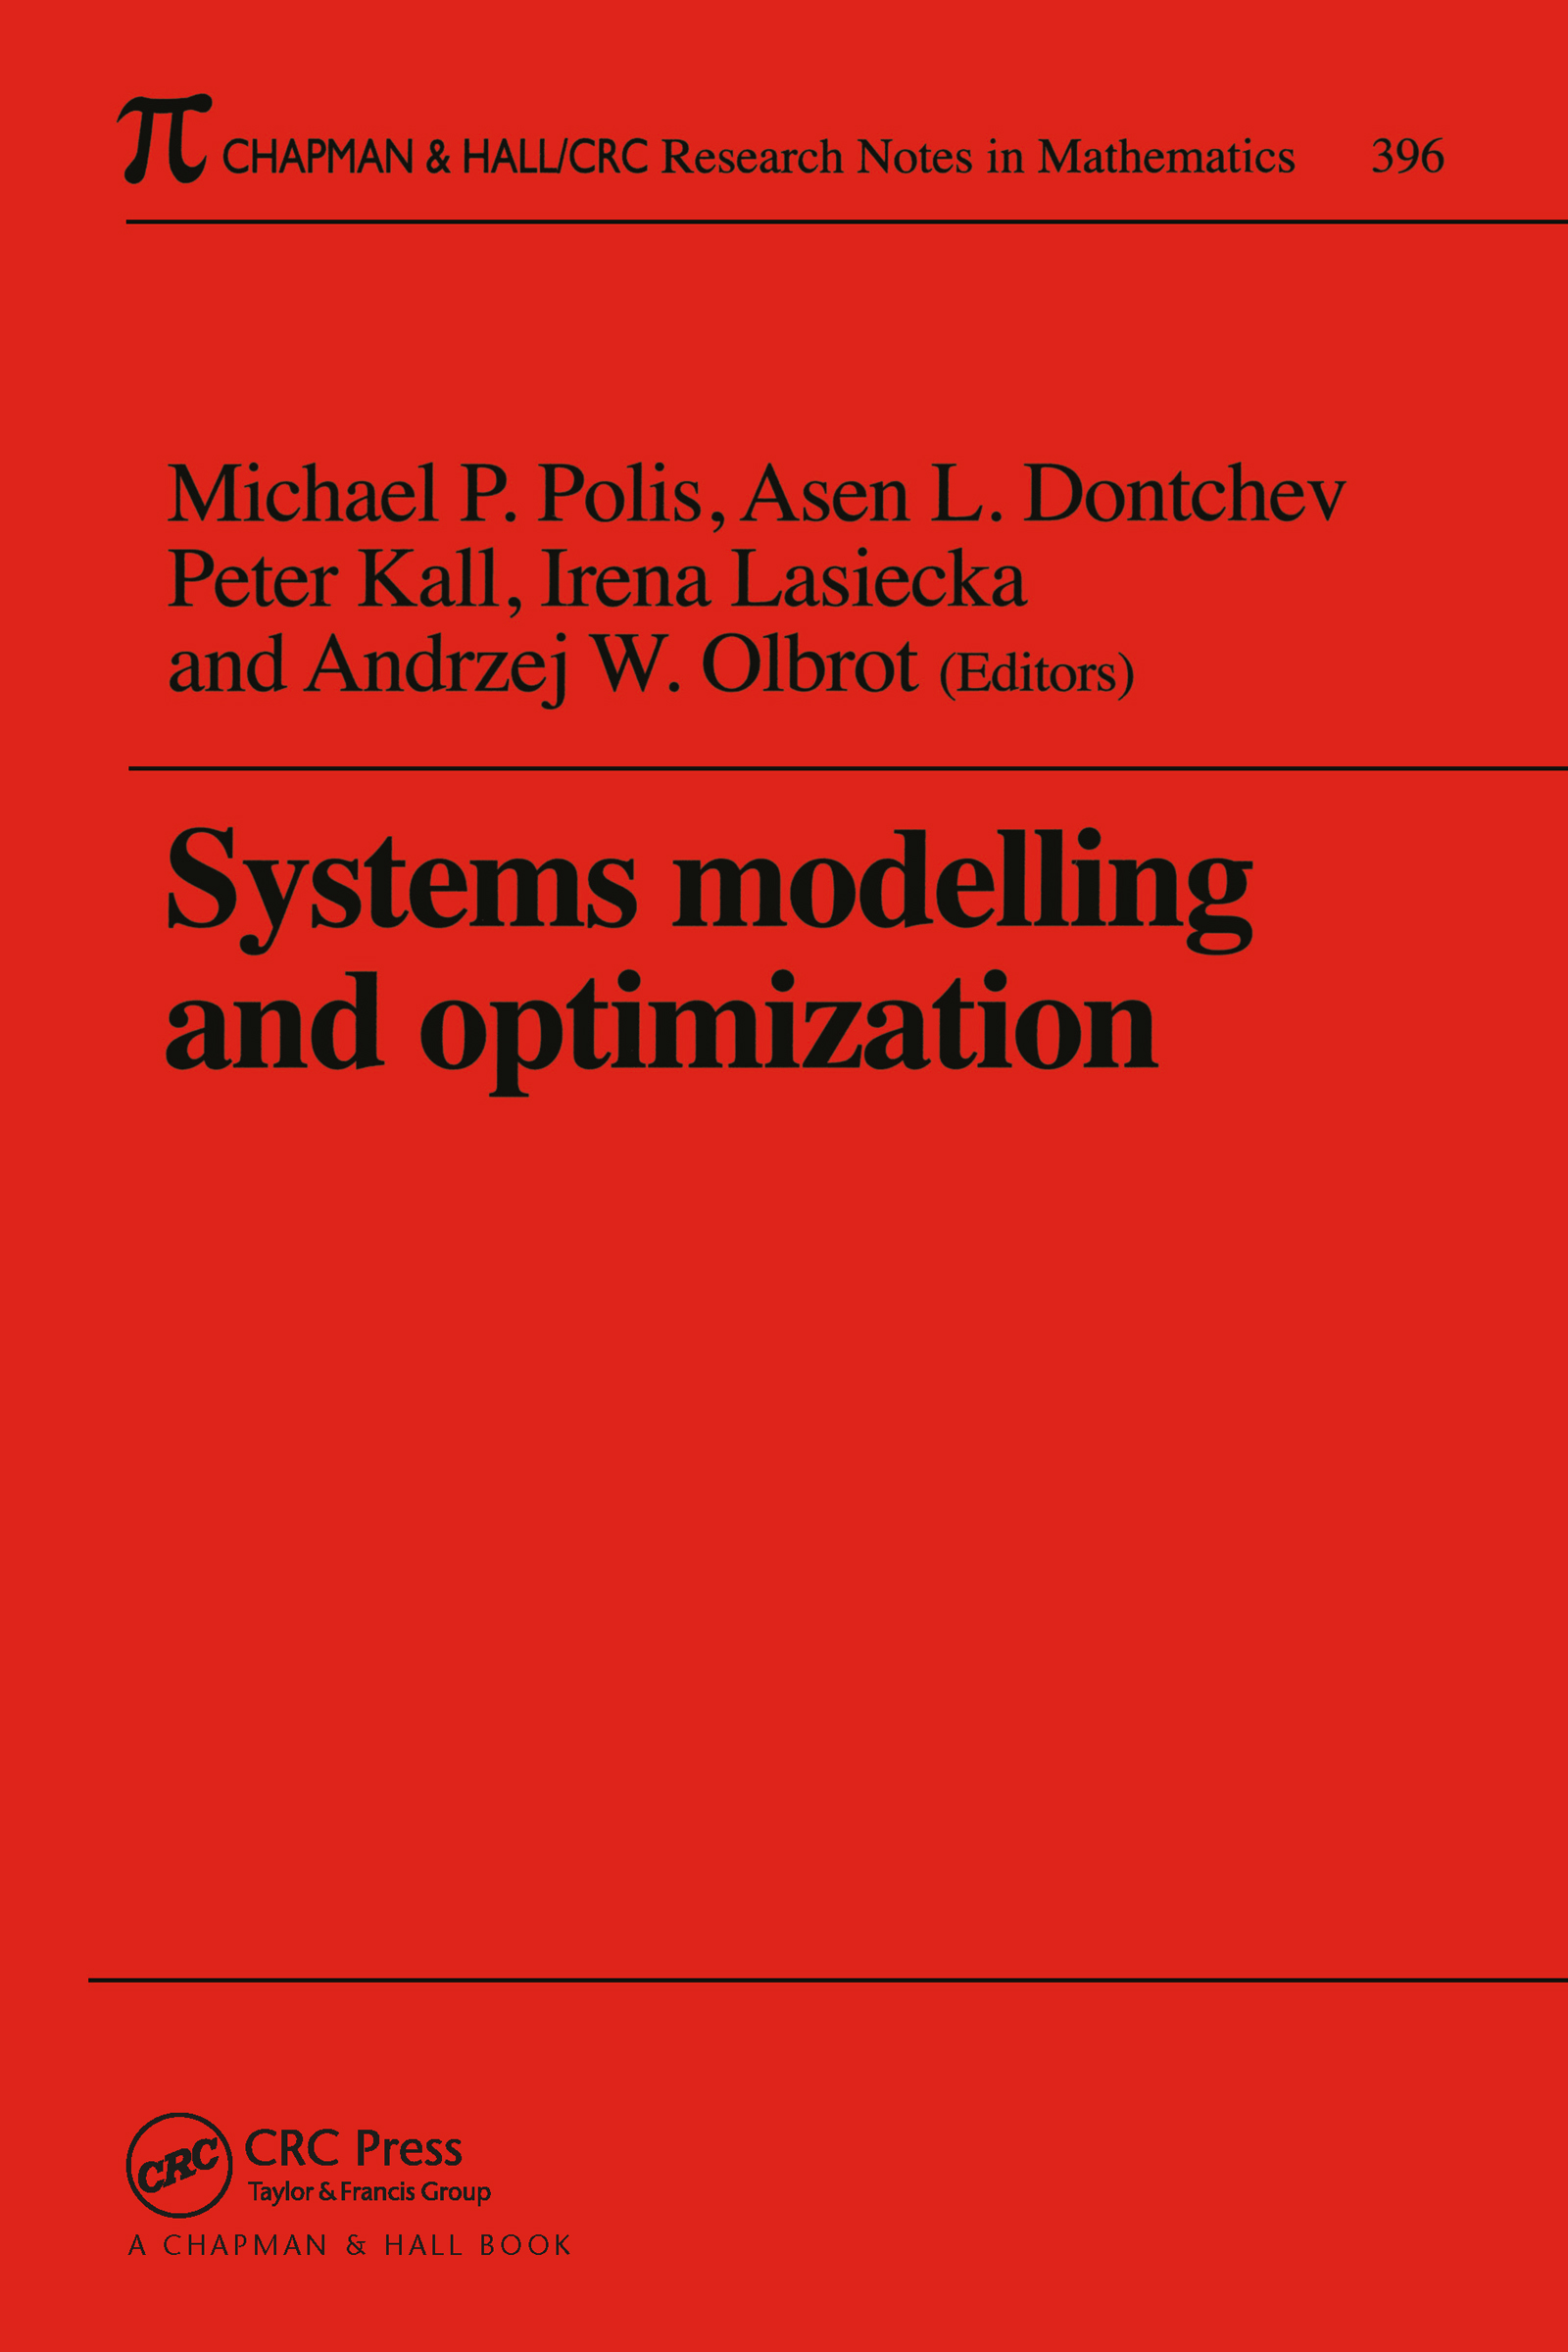 Systems Modelling and Optimization Proceedings of the 18th IFIP TC7 Conference: 1st Edition (Paperback) book cover